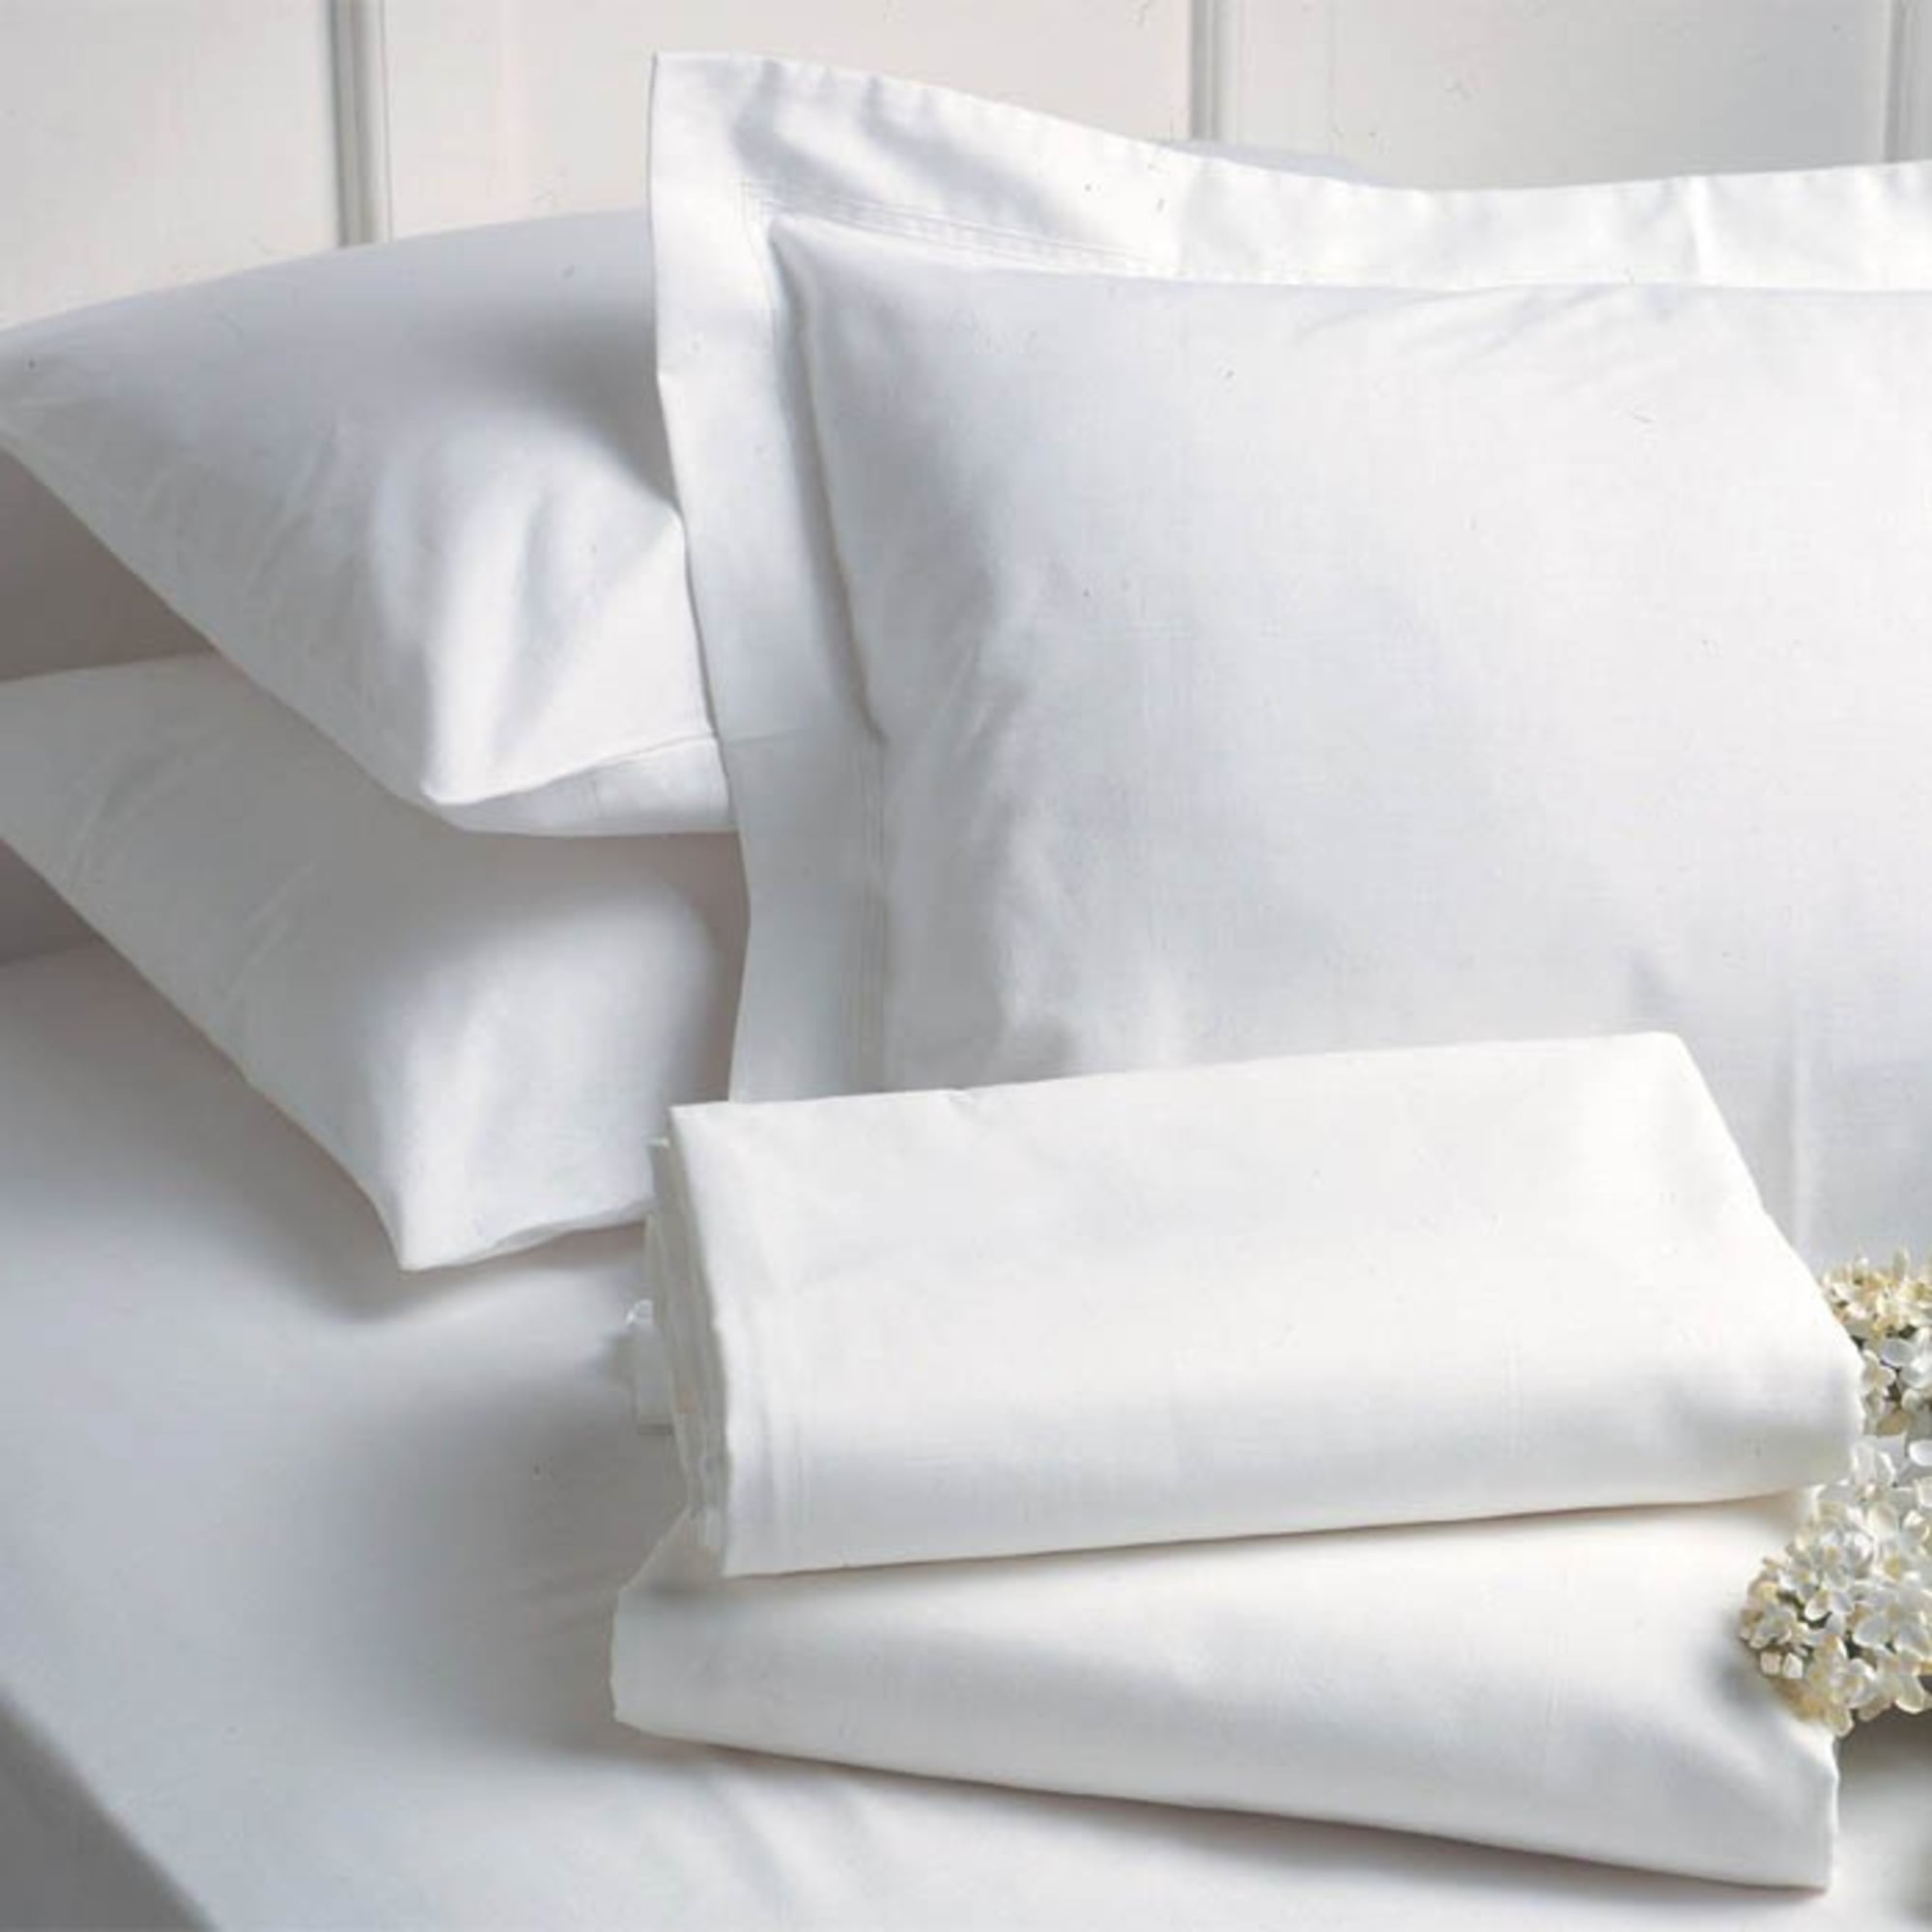 About white 1000tc egyptian cotton complete bedding collection sheet - 1000tc Luxury Egyptian Cotton Fitted Sheet Dorchester